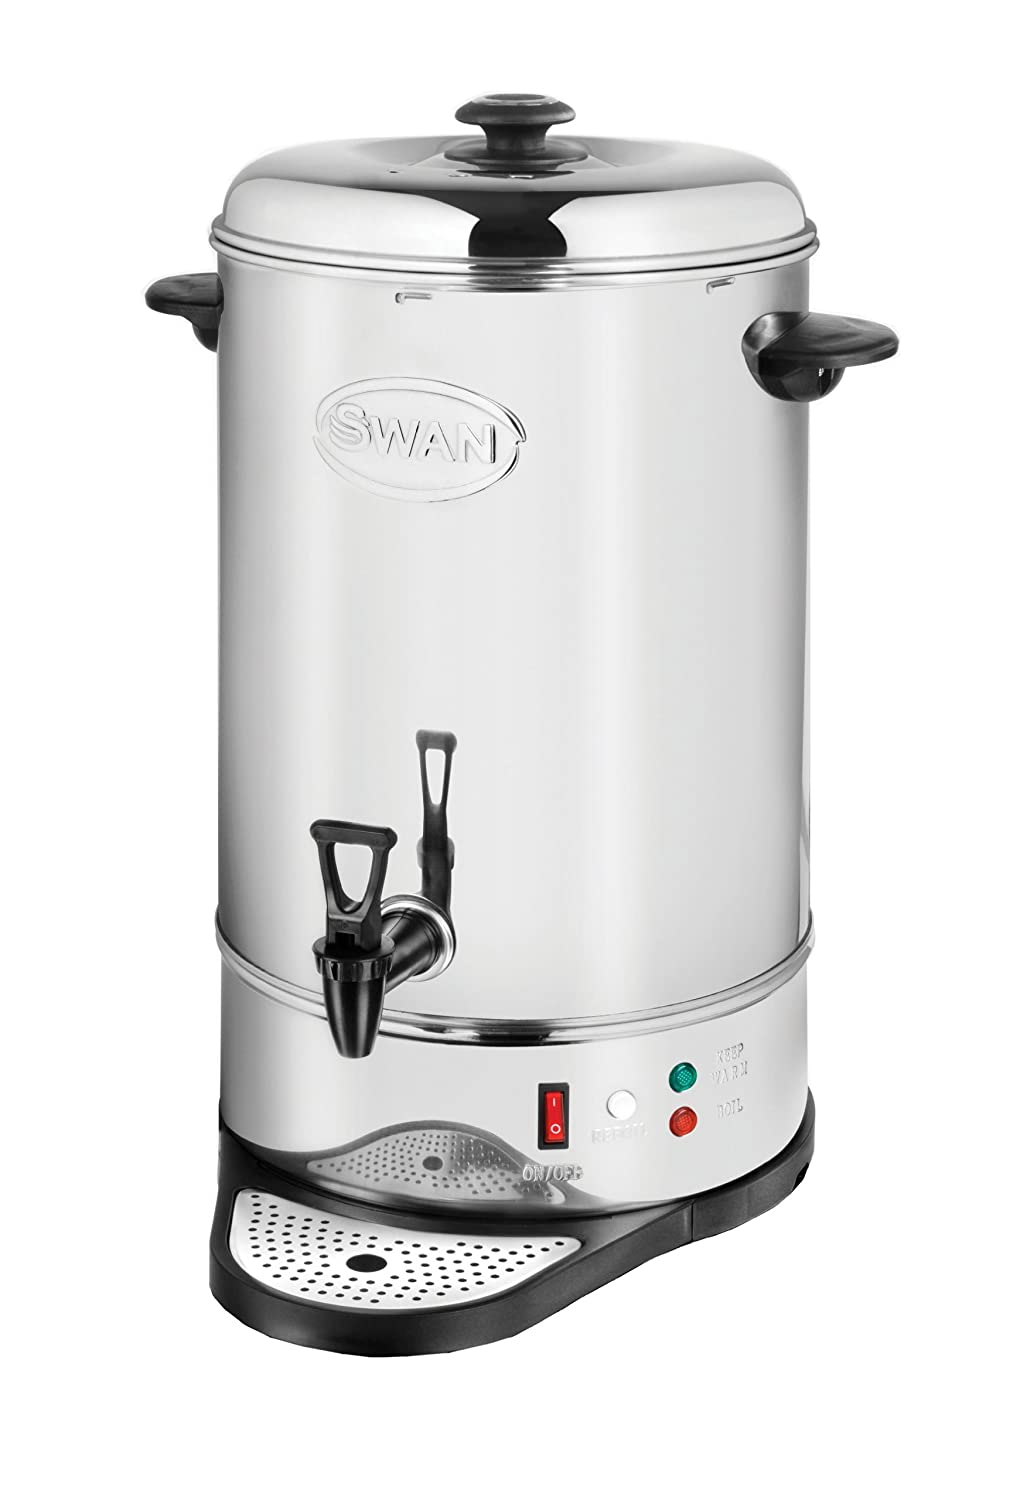 Electric Hot Water Boilers ~ Ds swan tea urn commercial electric catering hot water